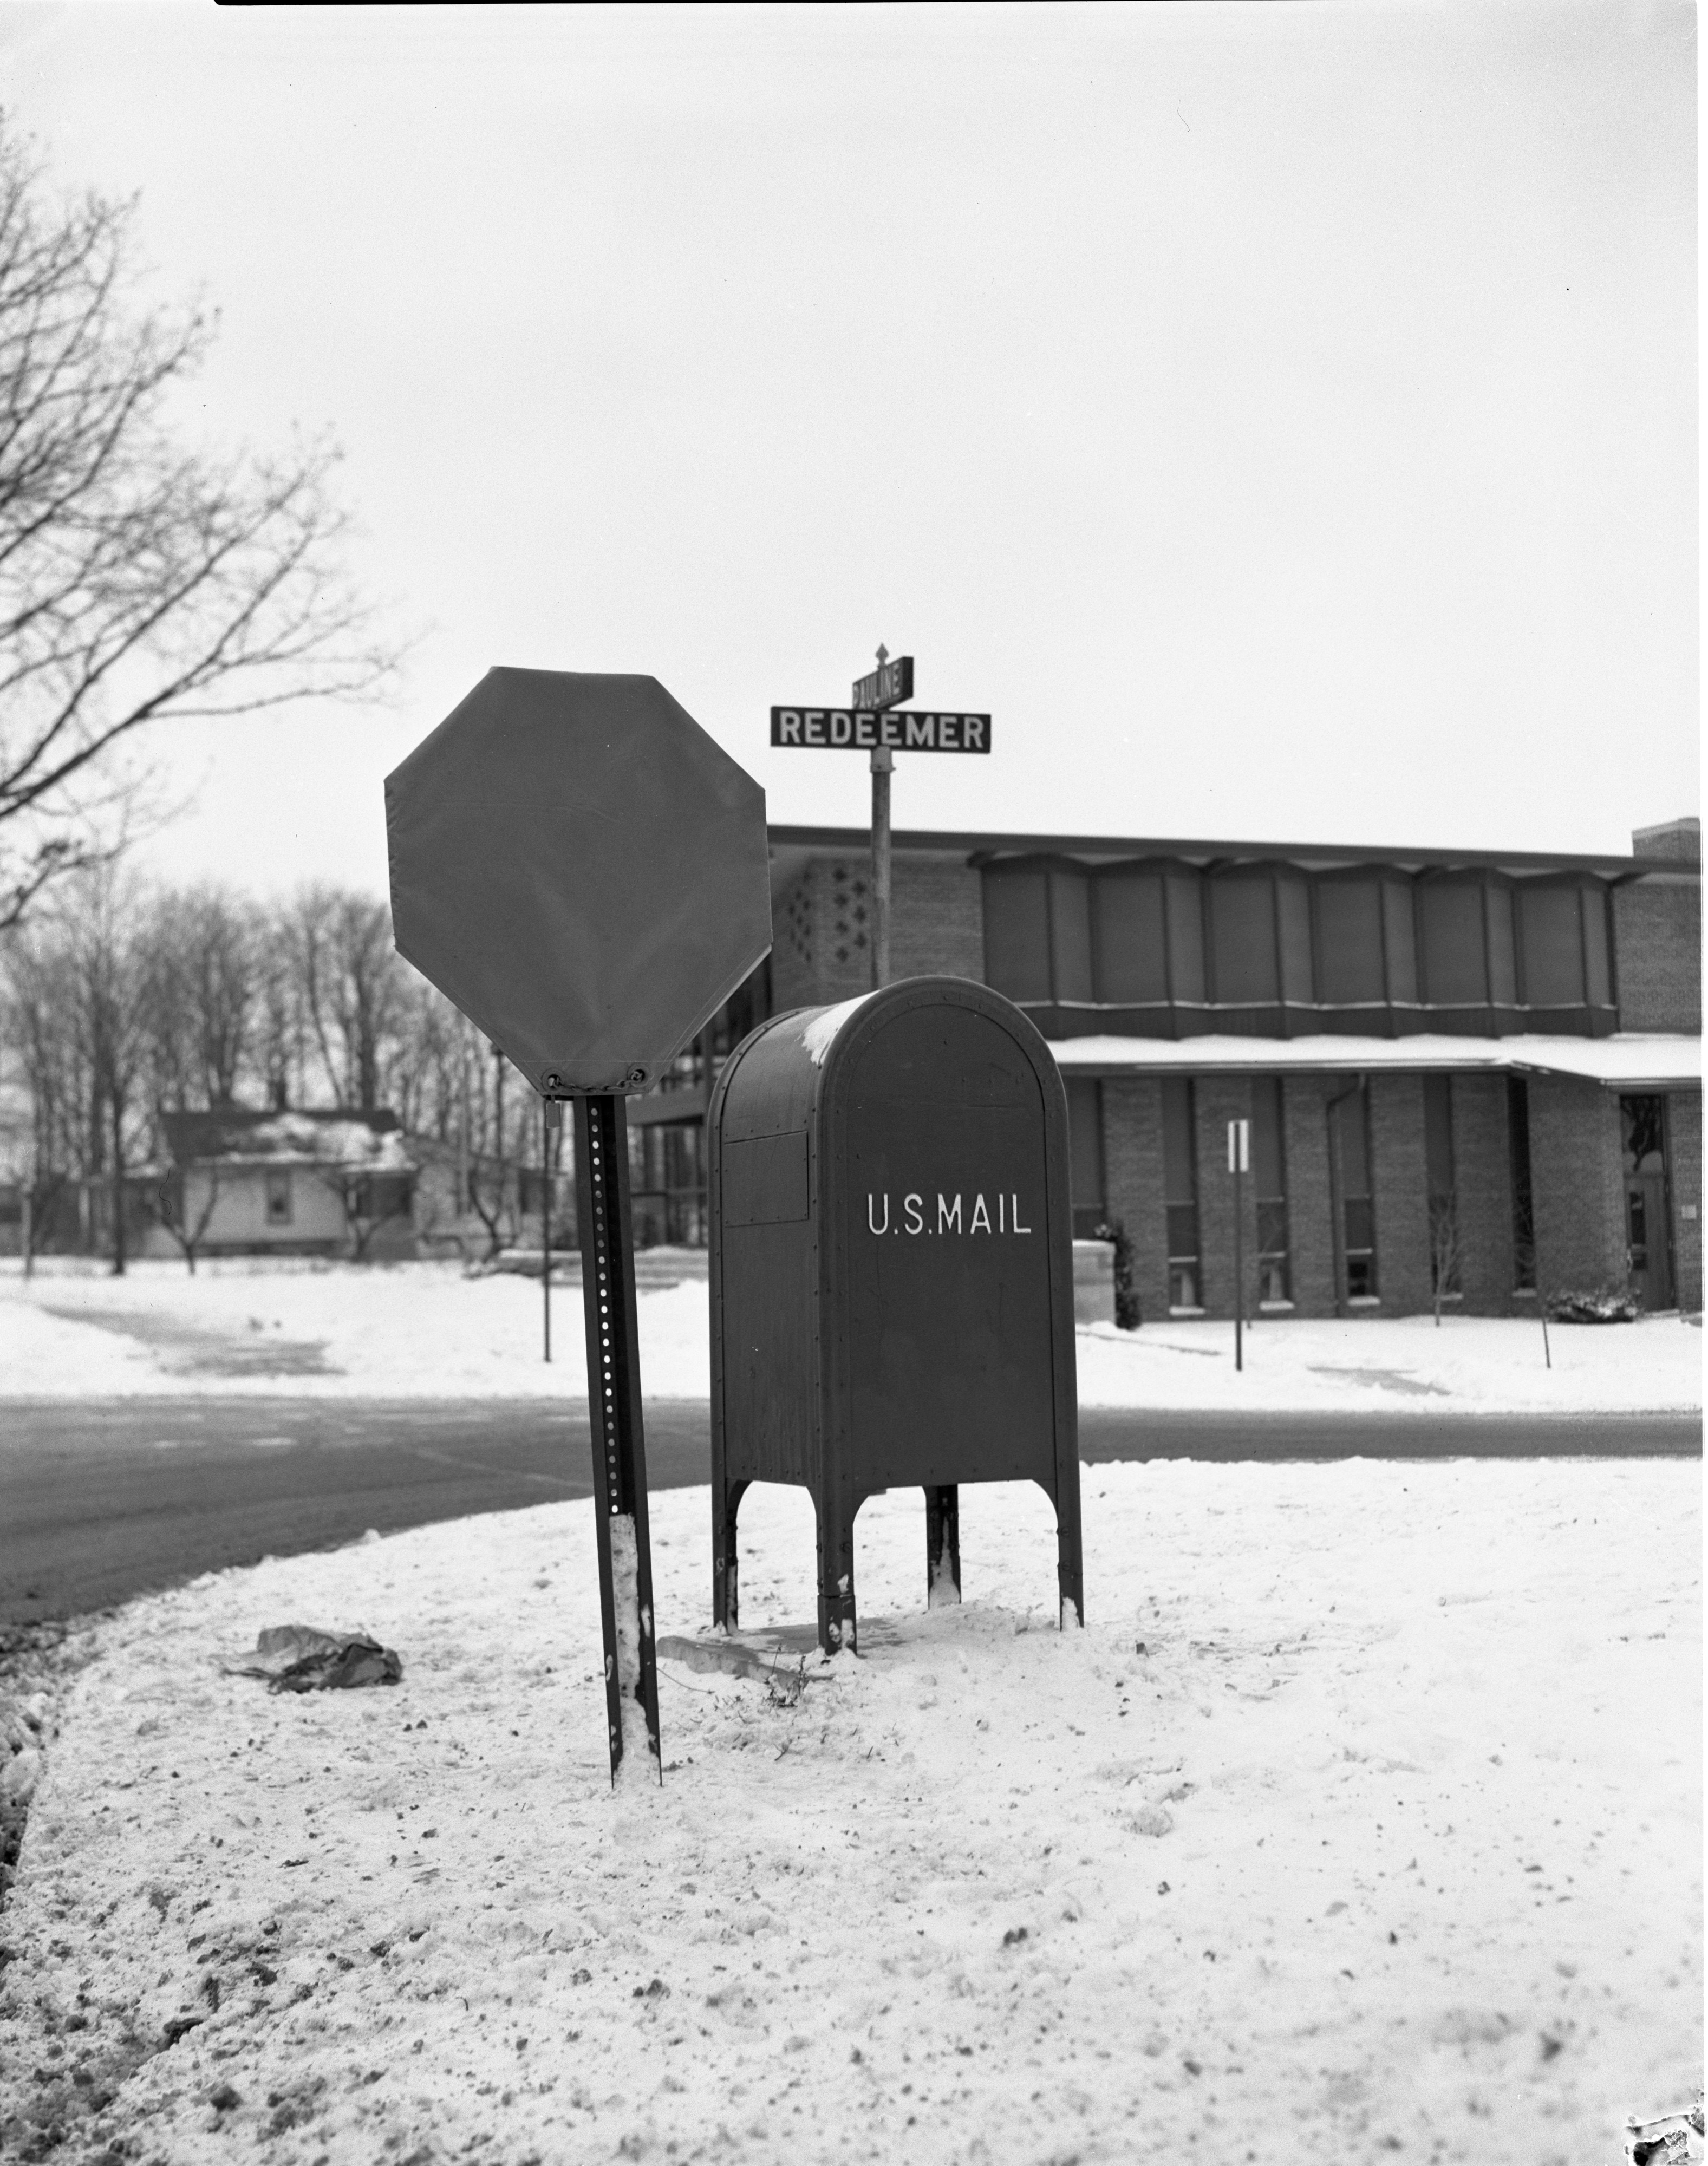 Short Stop Sign At Corner of Redeemer Ave and Pauline Blvd, February 1961 image